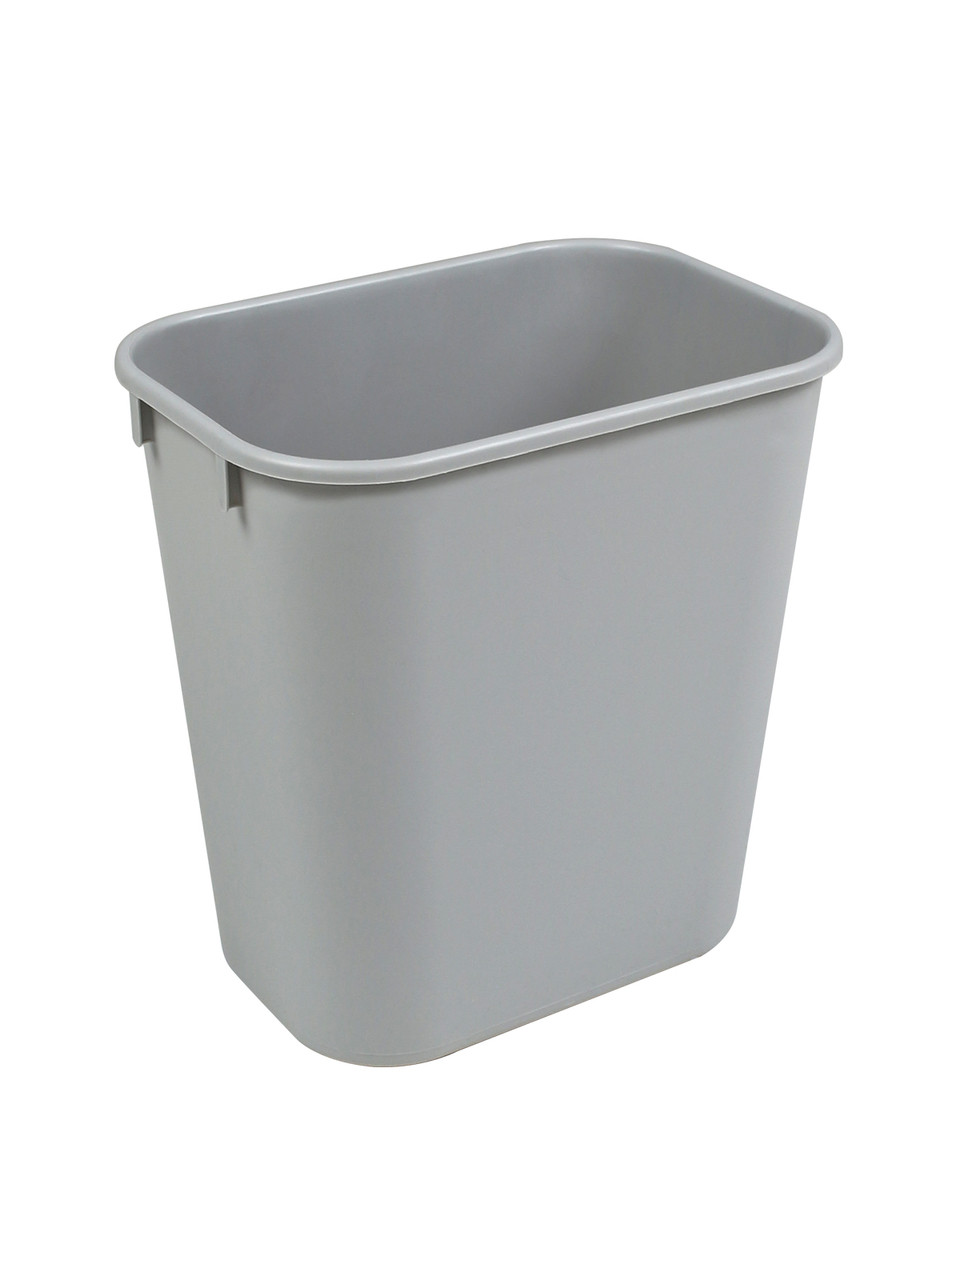 14 Quart Home or Office Plastic Wastebasket Gray 14QGY (2 Pack)